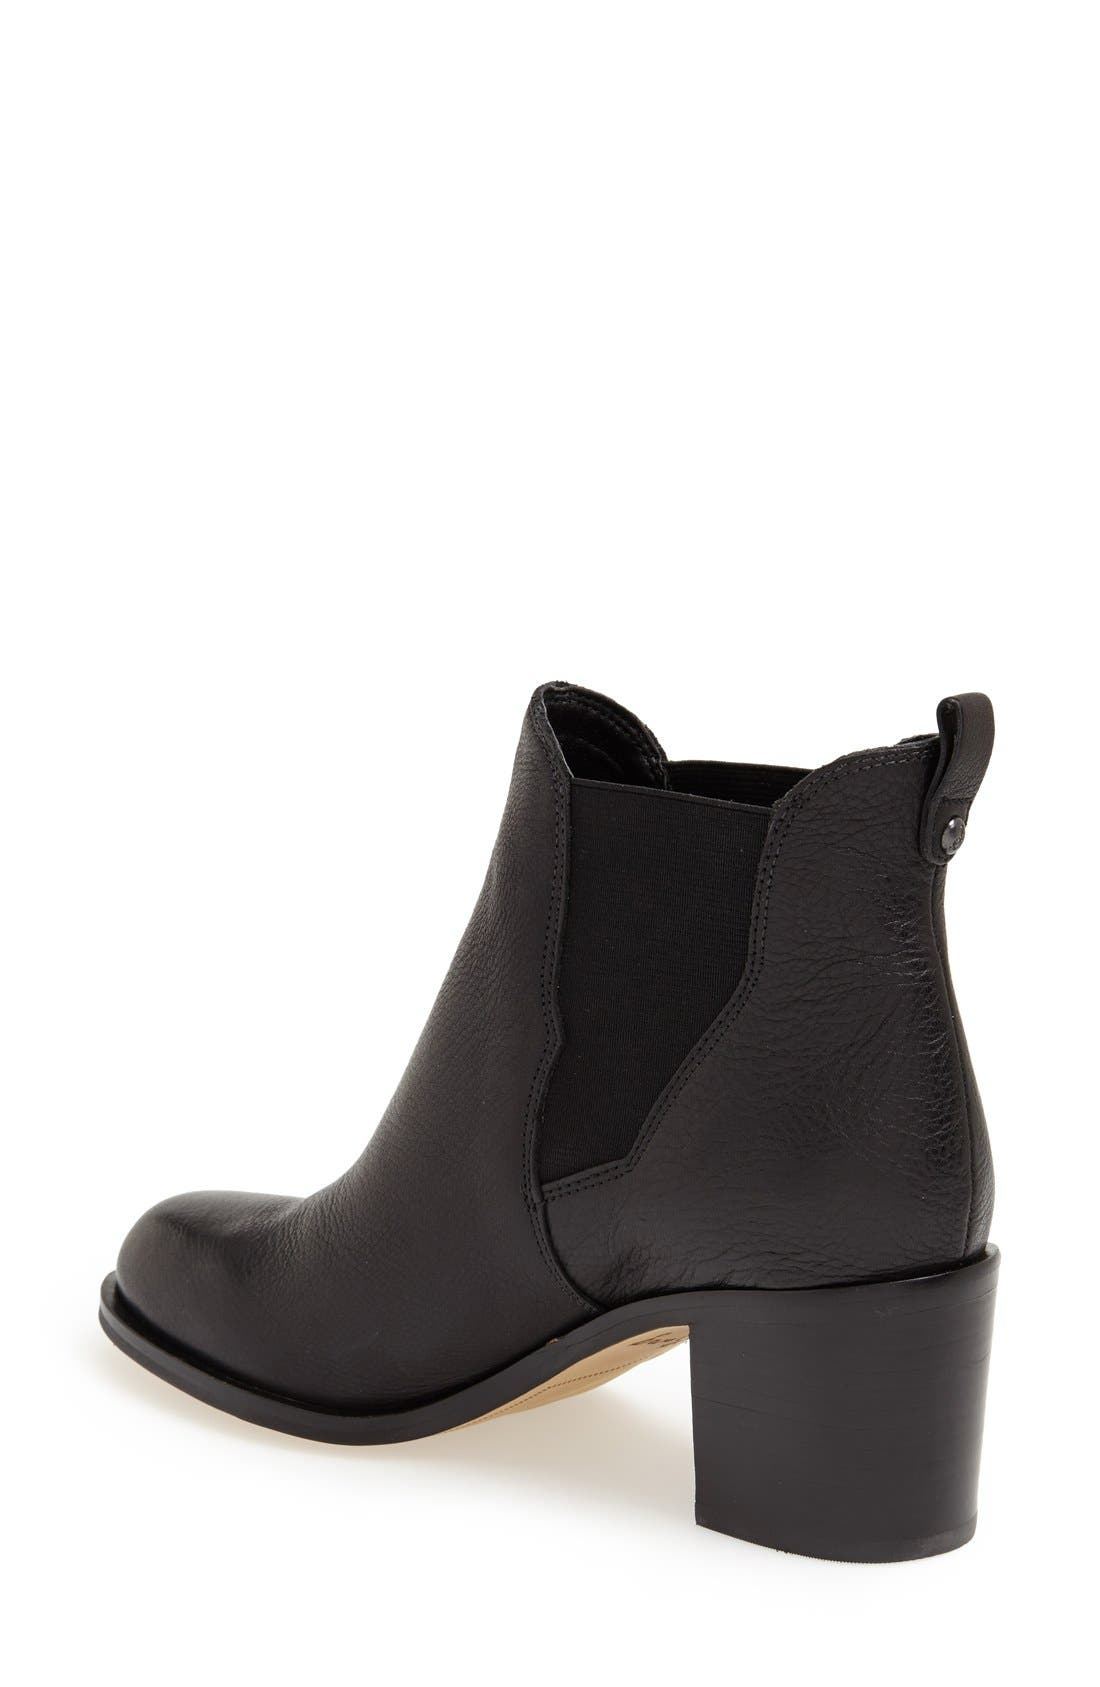 Alternate Image 2  - Sam Edelman 'Justin' Leather Bootie (Women)